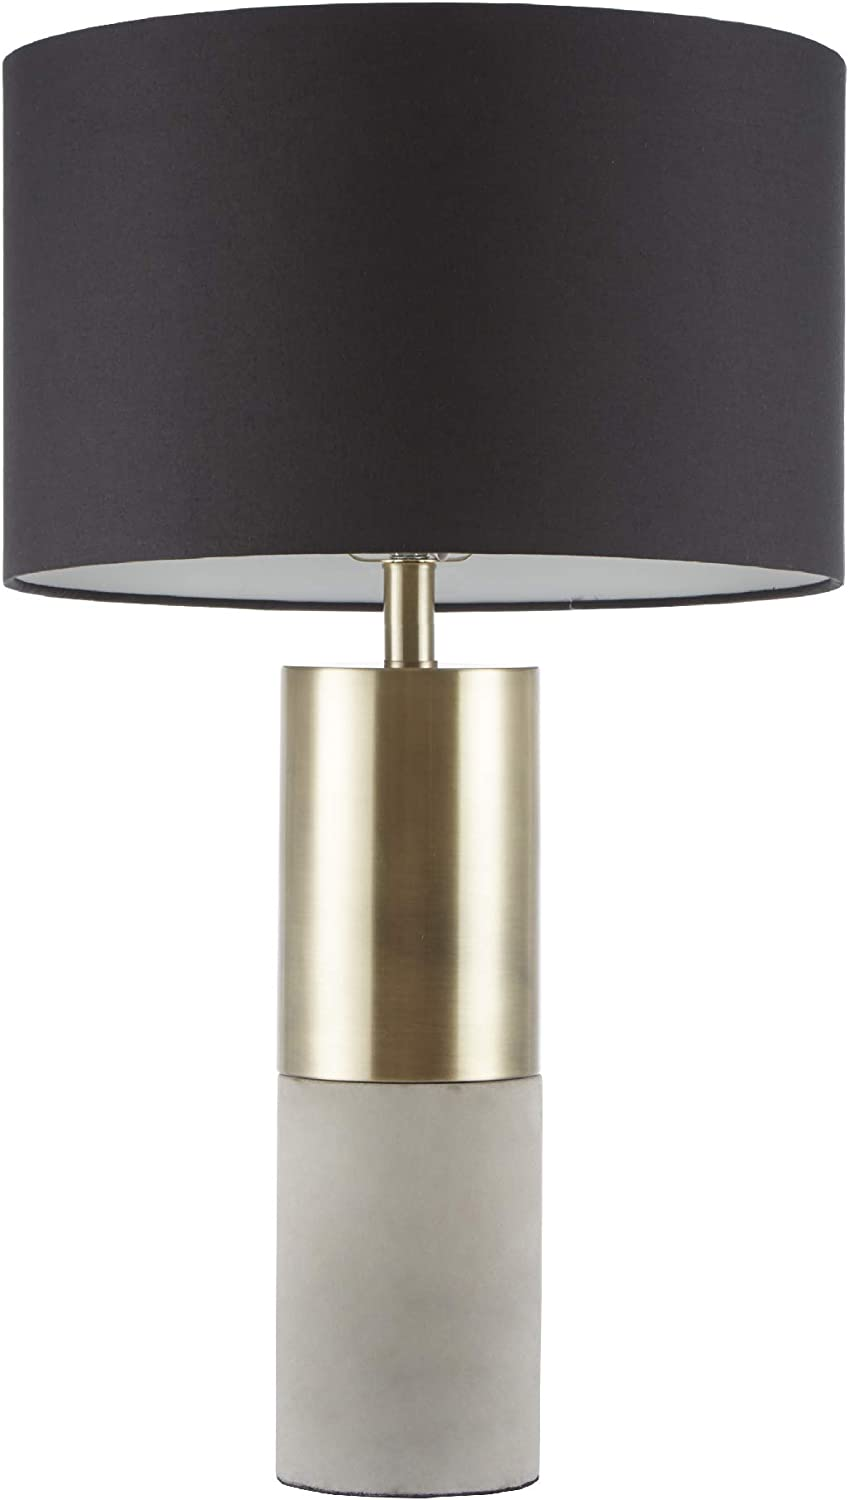 "Hampton Hill MPS153-0079 Fulton Desk Lamp, Bedside Nightstand Bedroom Light Modern Luxe Metal, Concrete Base, Fabric Drum Shade Accent Furniture Décor, 27.5"" Tall, Gold/Black"